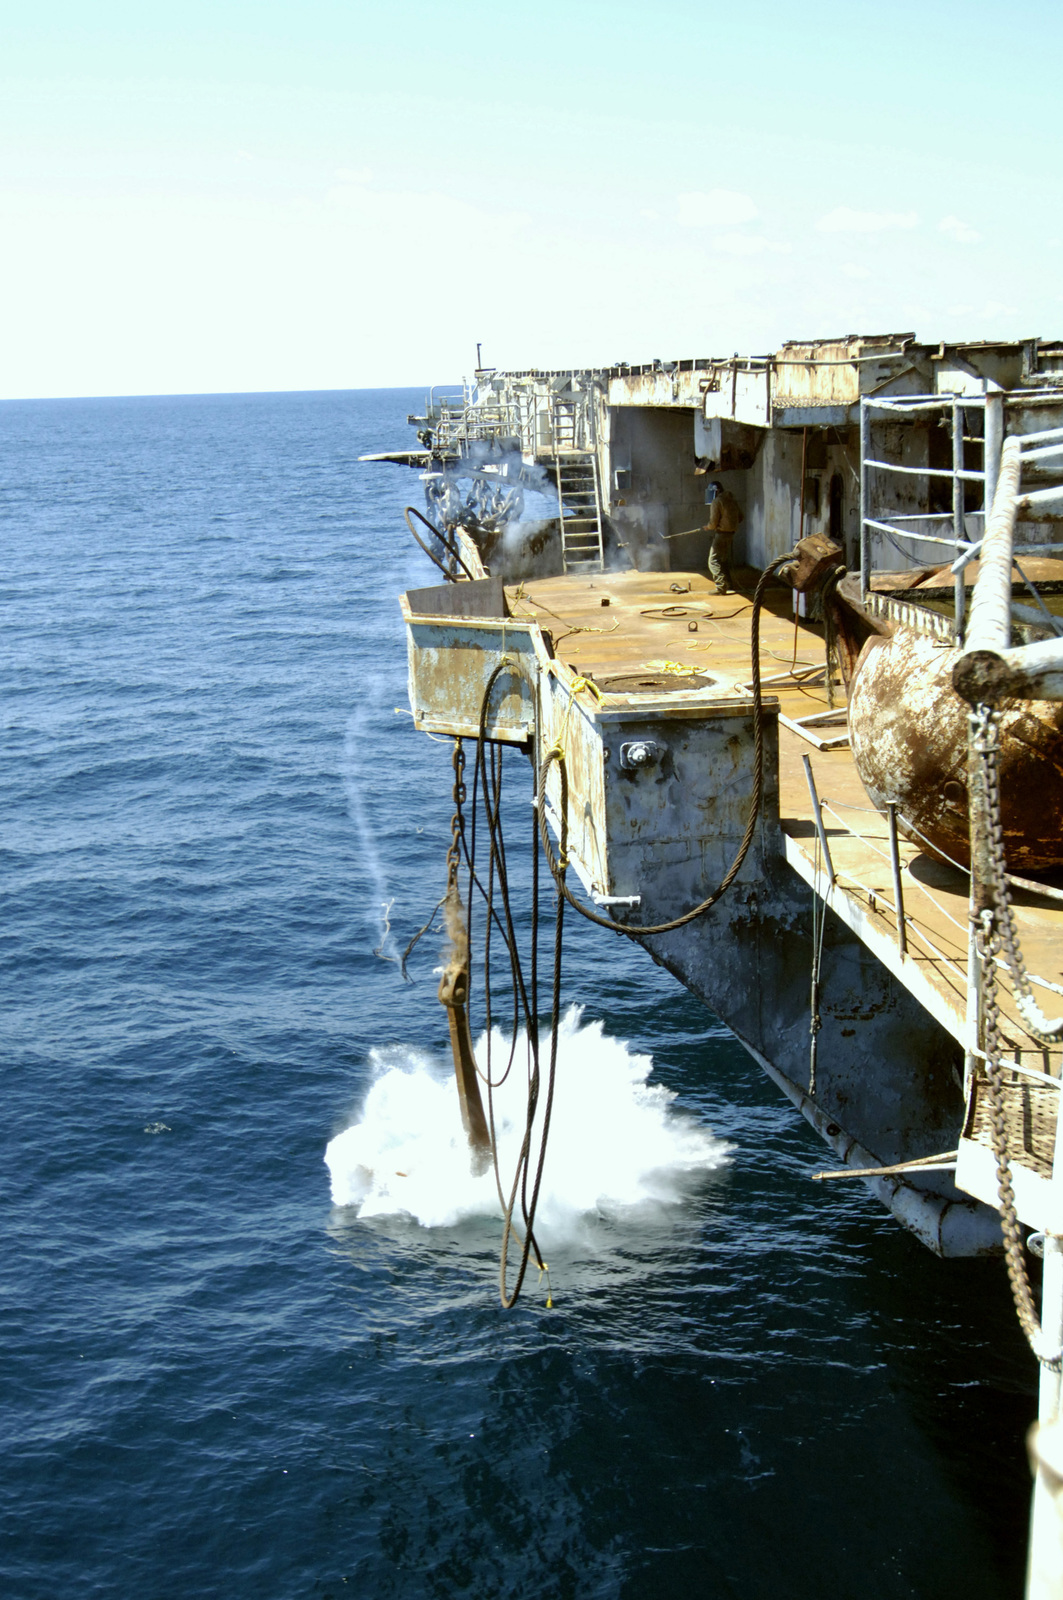 A view from onboard the decommissioned US Navy (USN